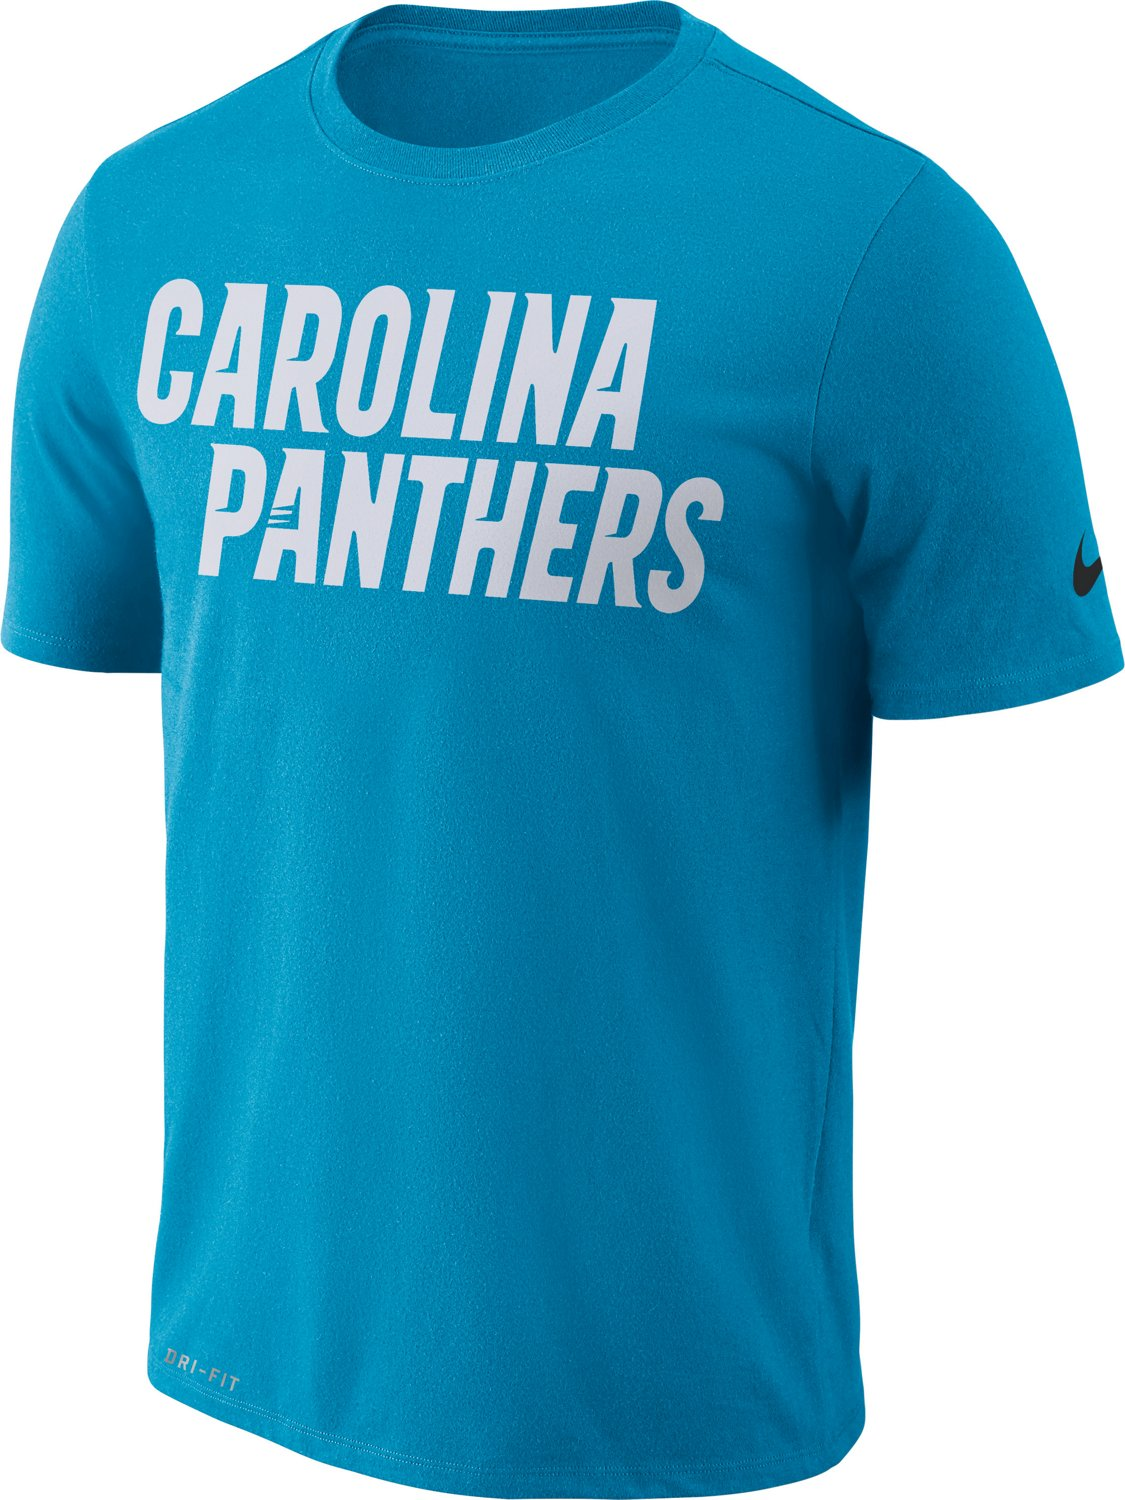 24593f5f2 Nike Men's Carolina Panthers Essential Wordmark T-Shirt | Academy